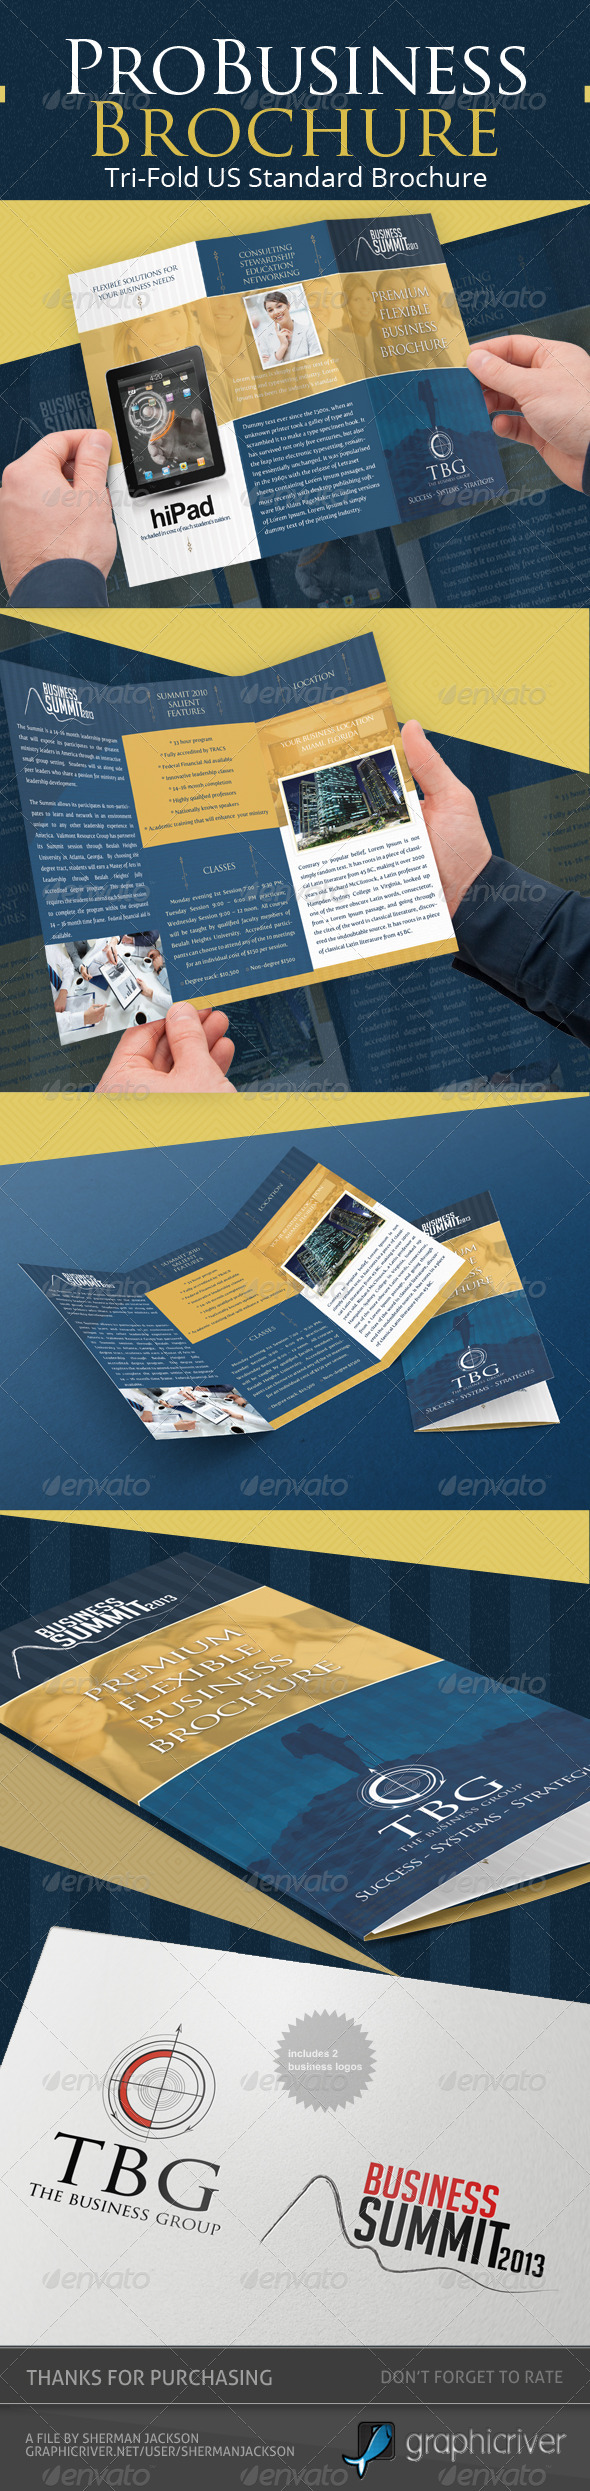 GraphicRiver Pro Business Trifold Brochure PSD Template 3926429